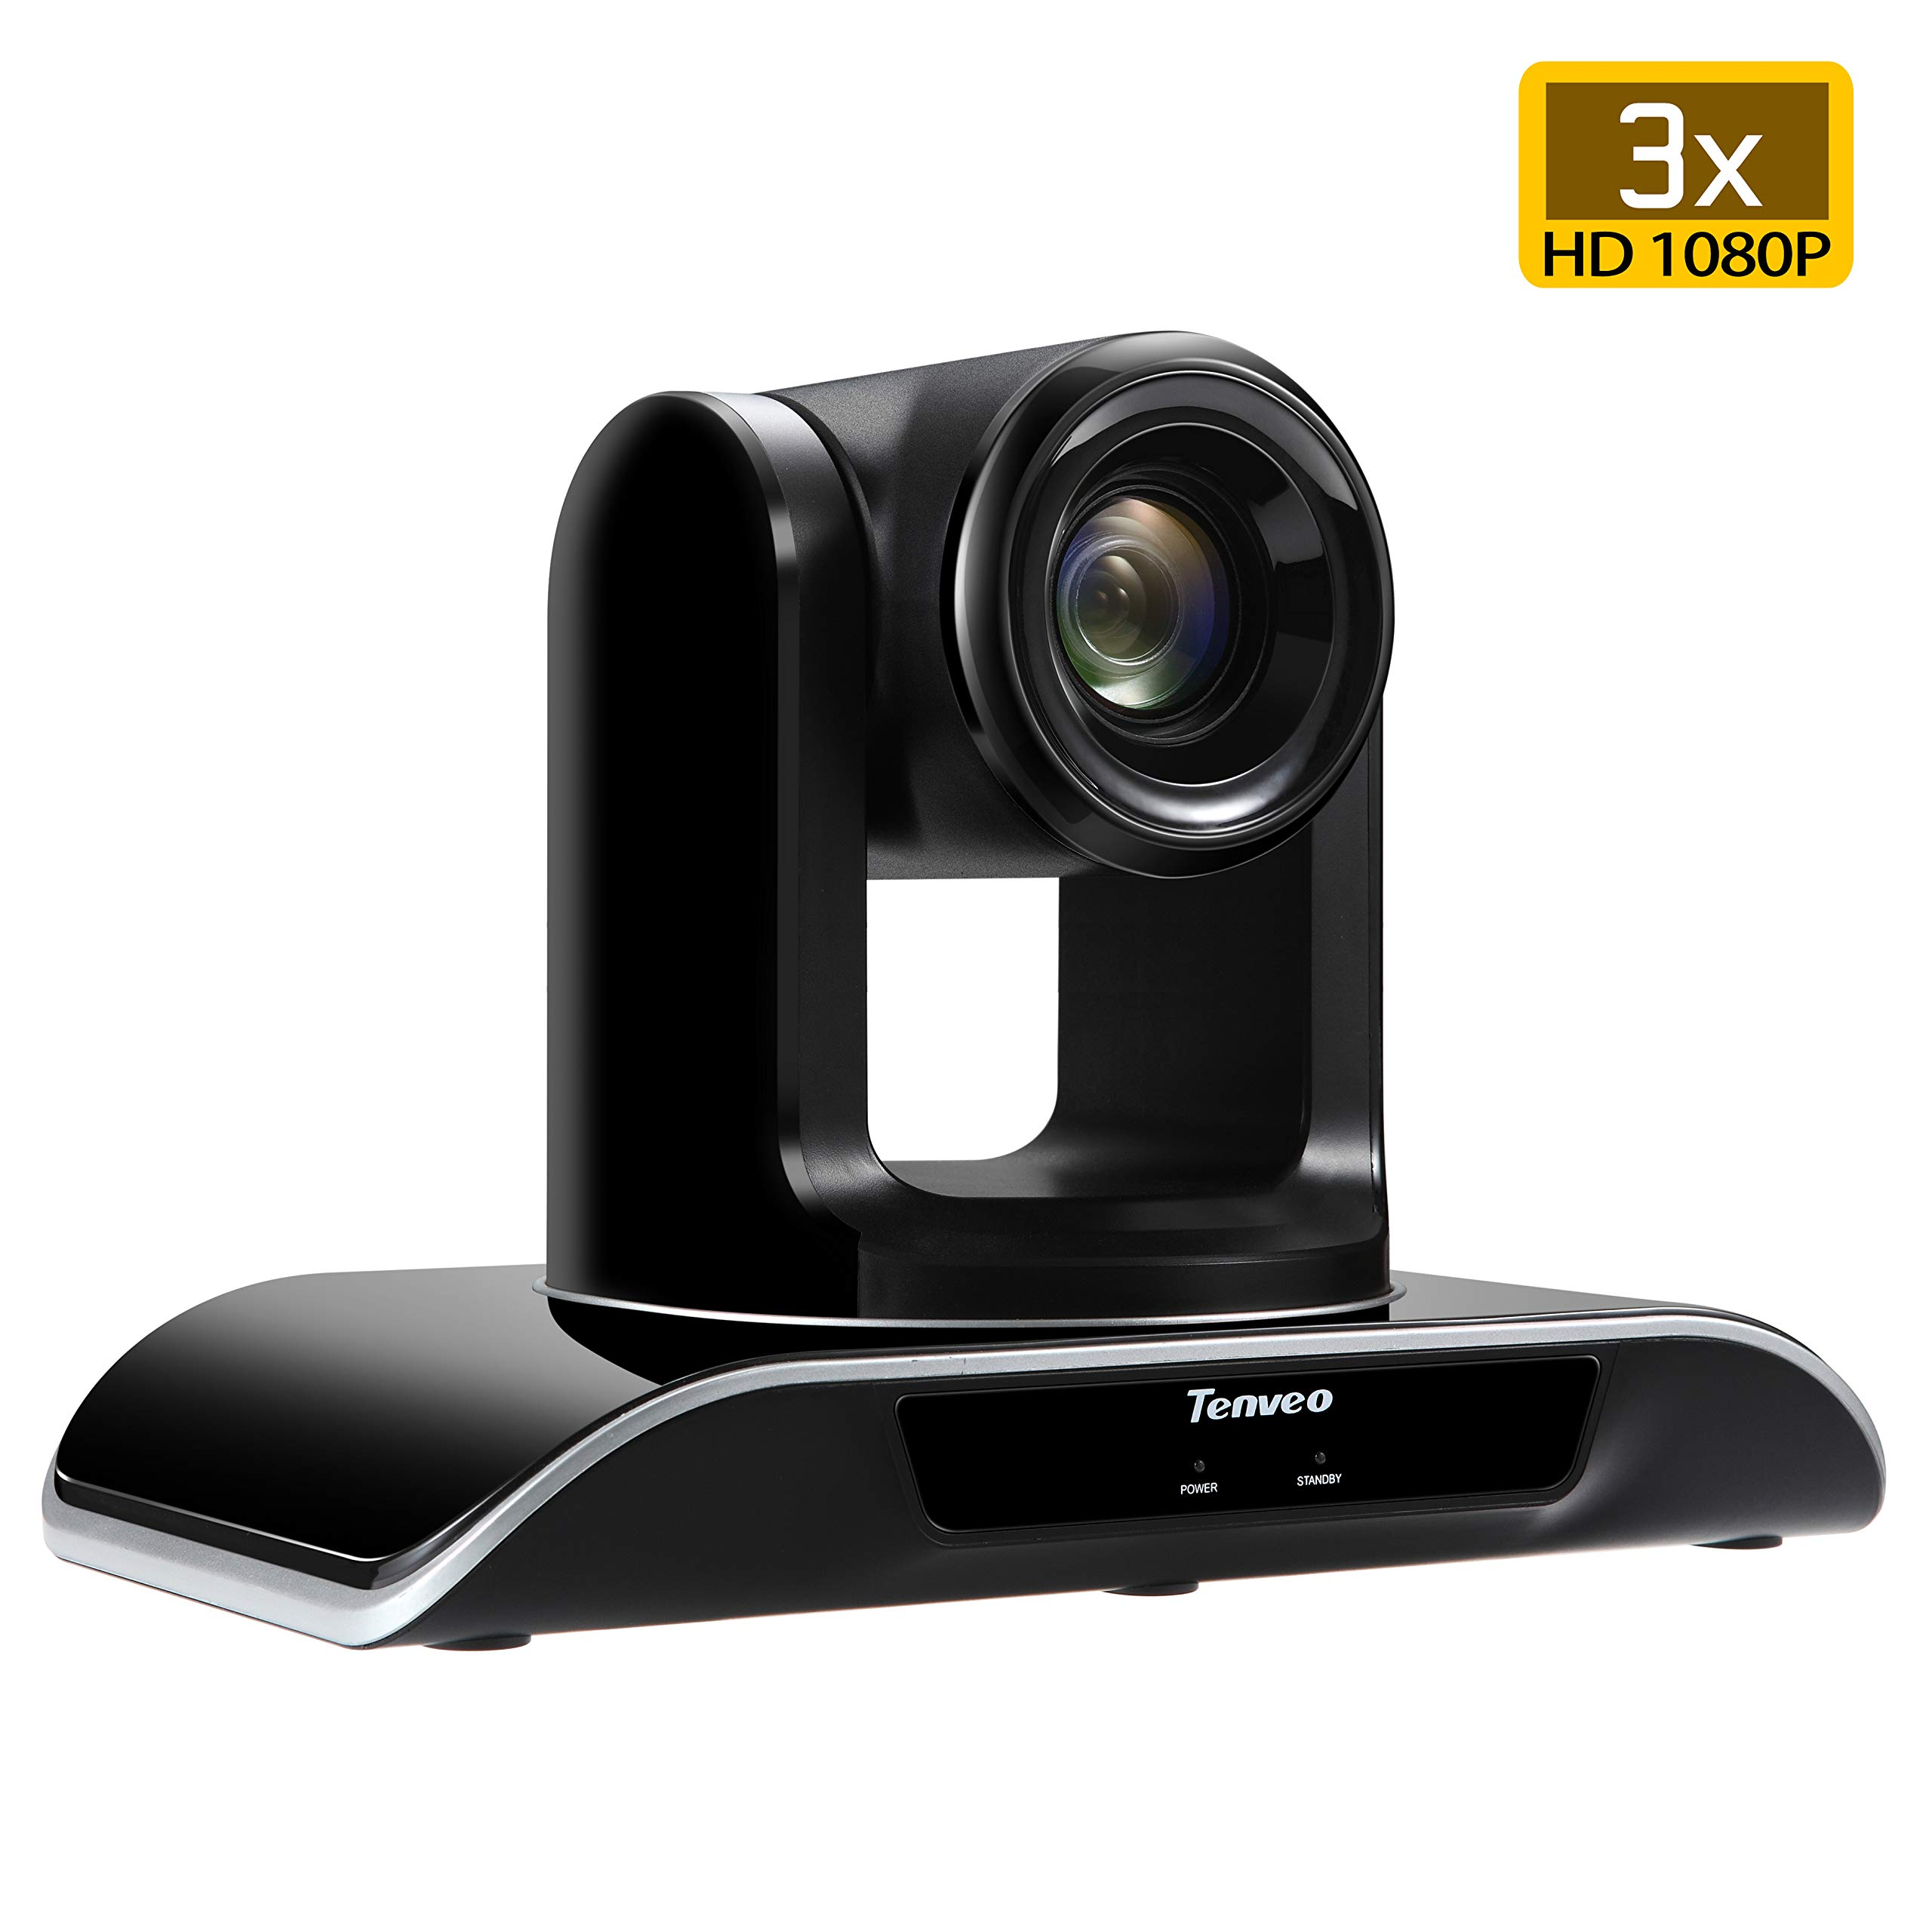 Tenveo Conference Room Camera 3X Optical Zoom Full HD 1080p USB PTZ Video Conference Camera for Business Meetings (3X Zoom TEVO-VHD3U) by Tenveo